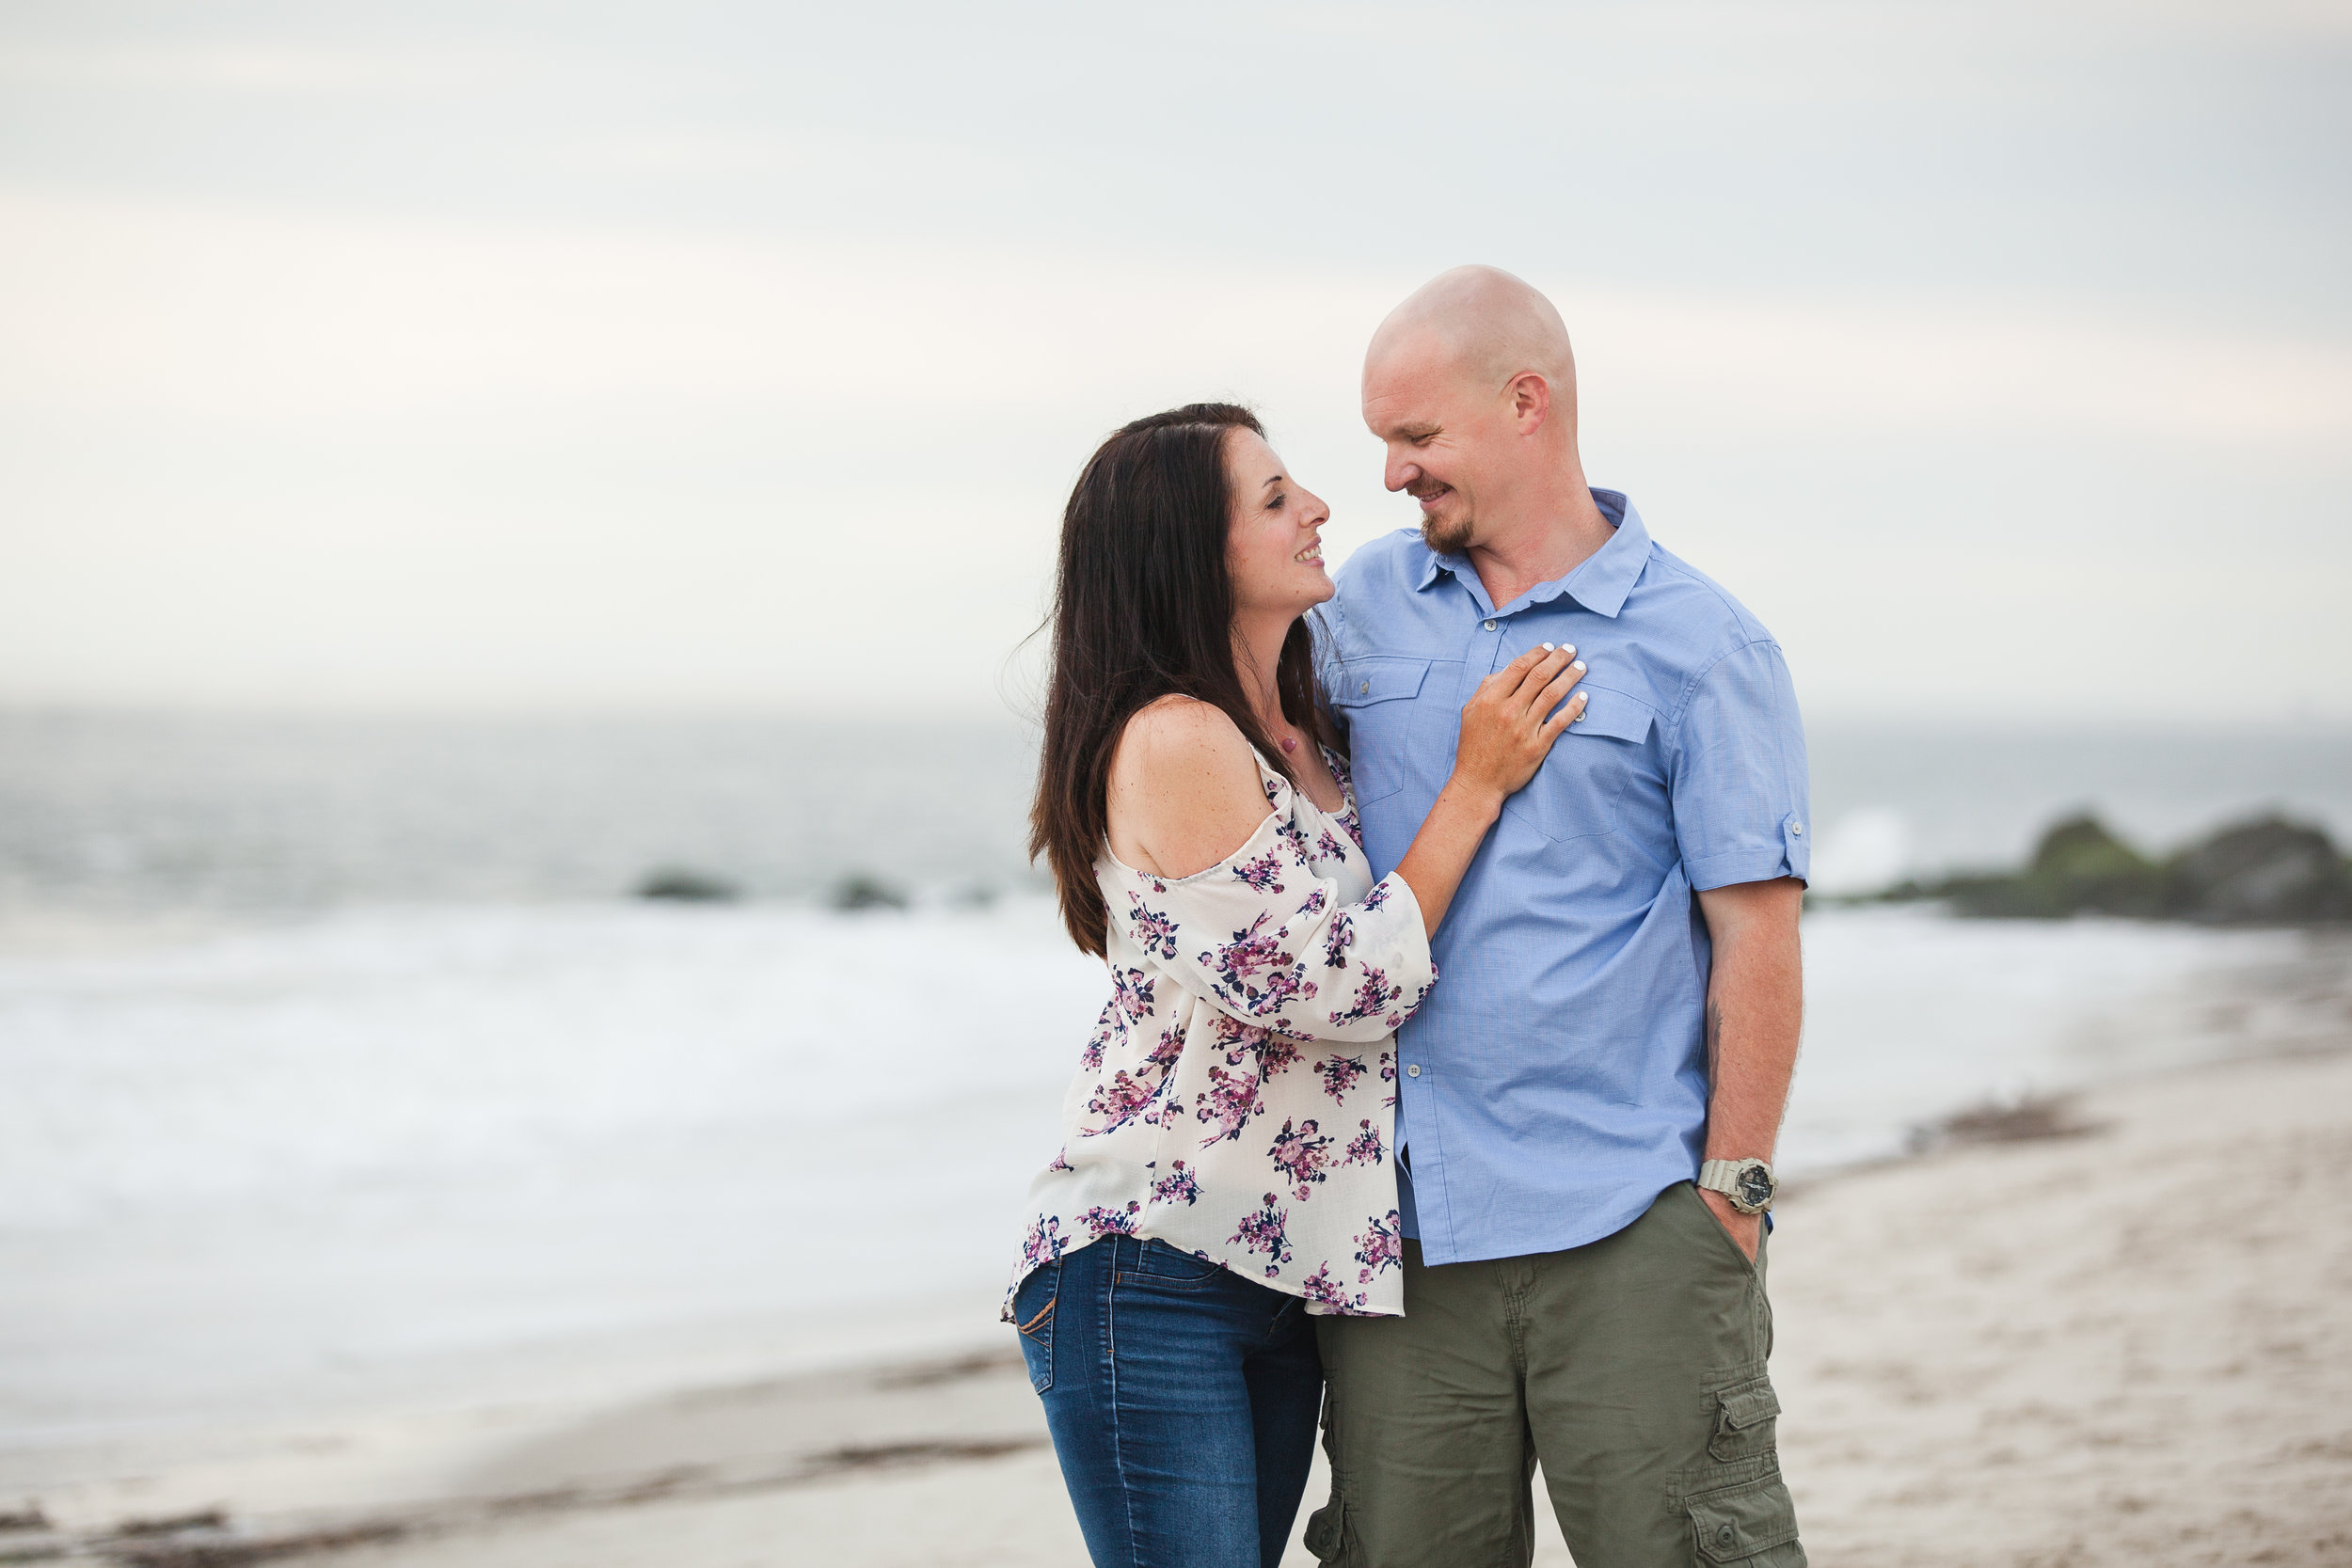 StaceyandJohnEngagementPrints-9.jpg